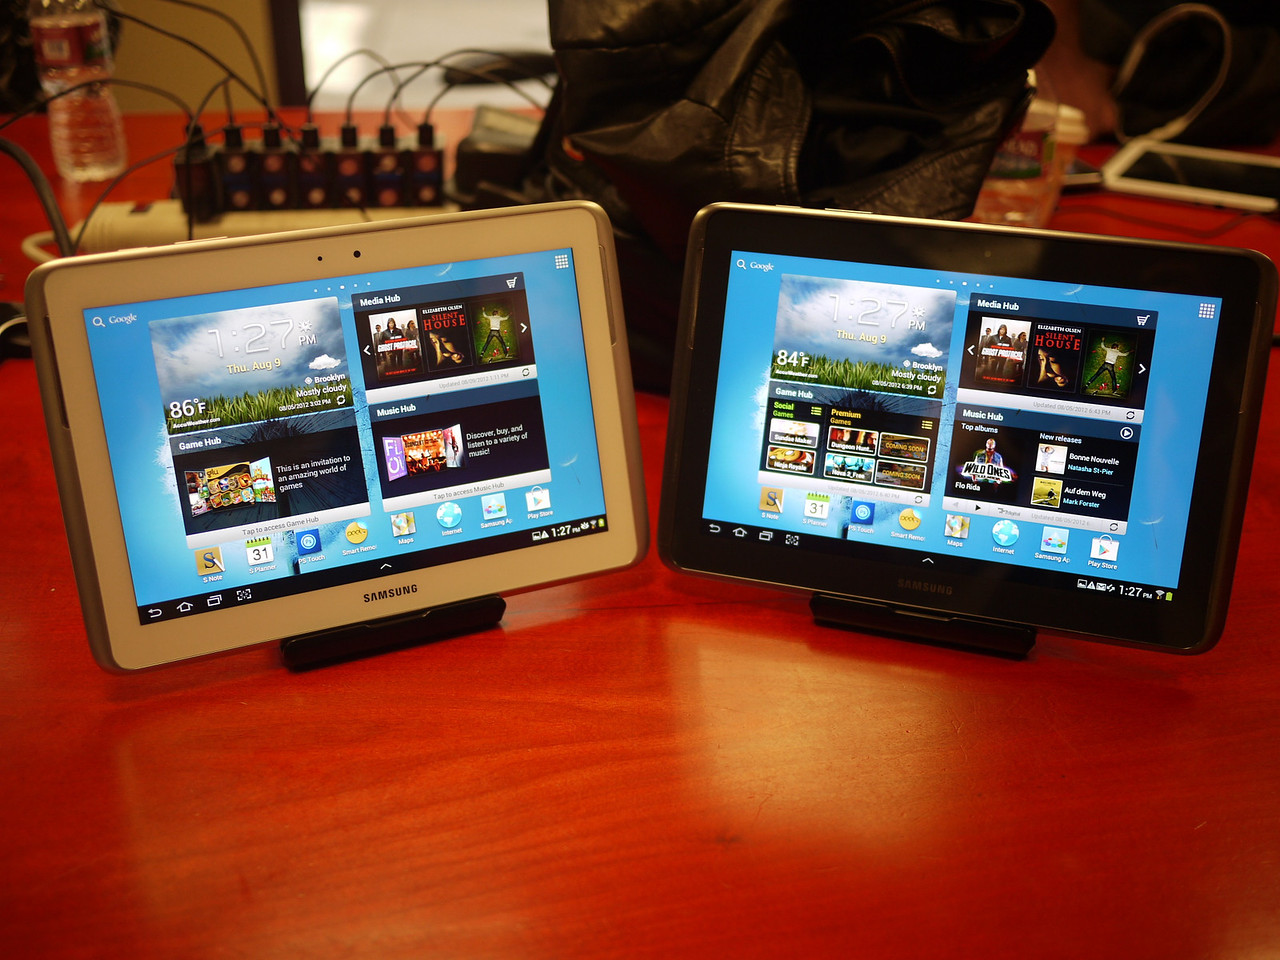 The Samsung Galaxy Note 10.1 will be available on August 16.